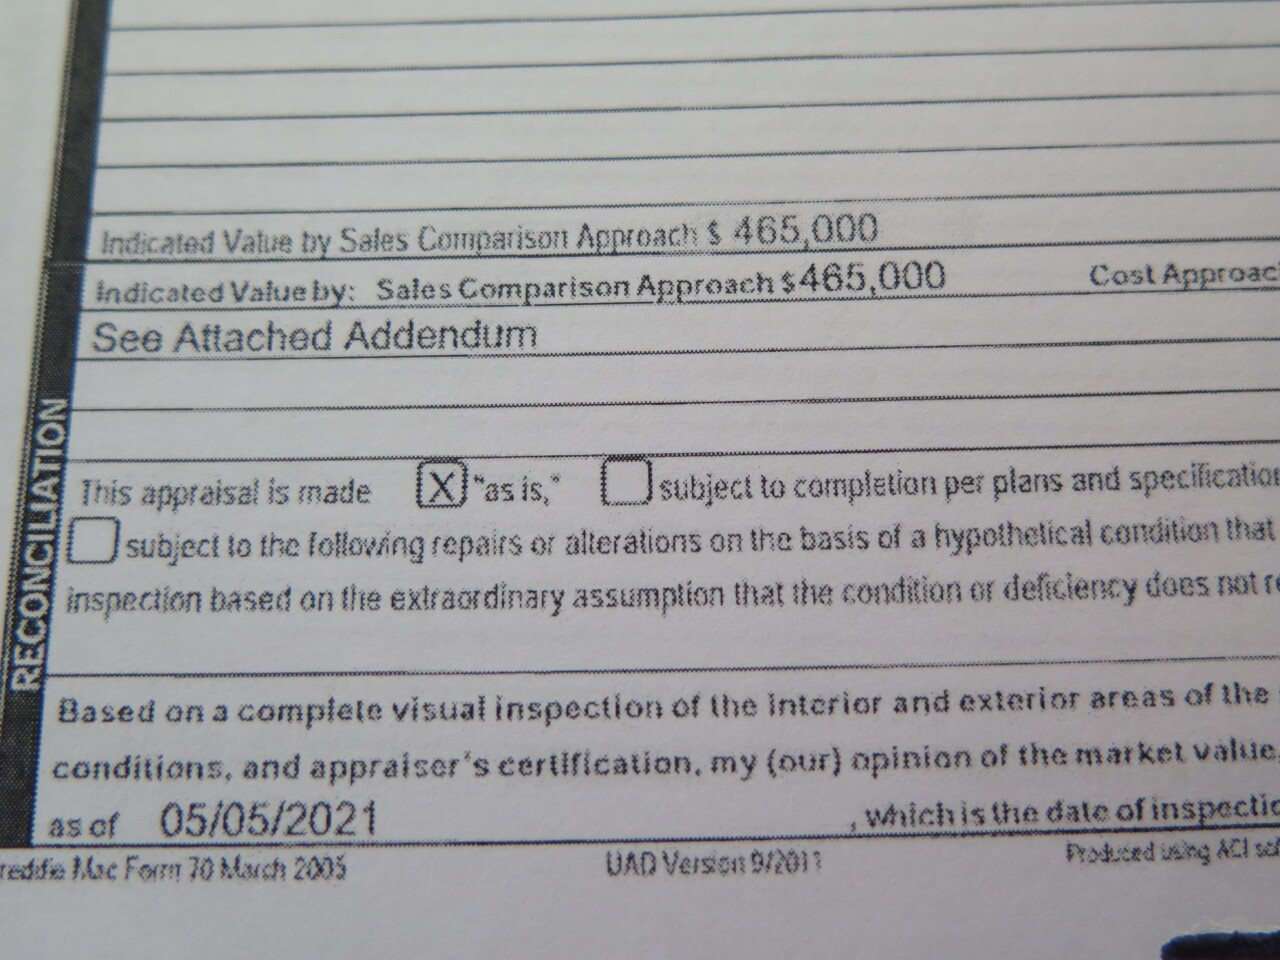 This page from a May 5, 2021, appraisal of the Parkers' Loveland home shows a value of $465,000.